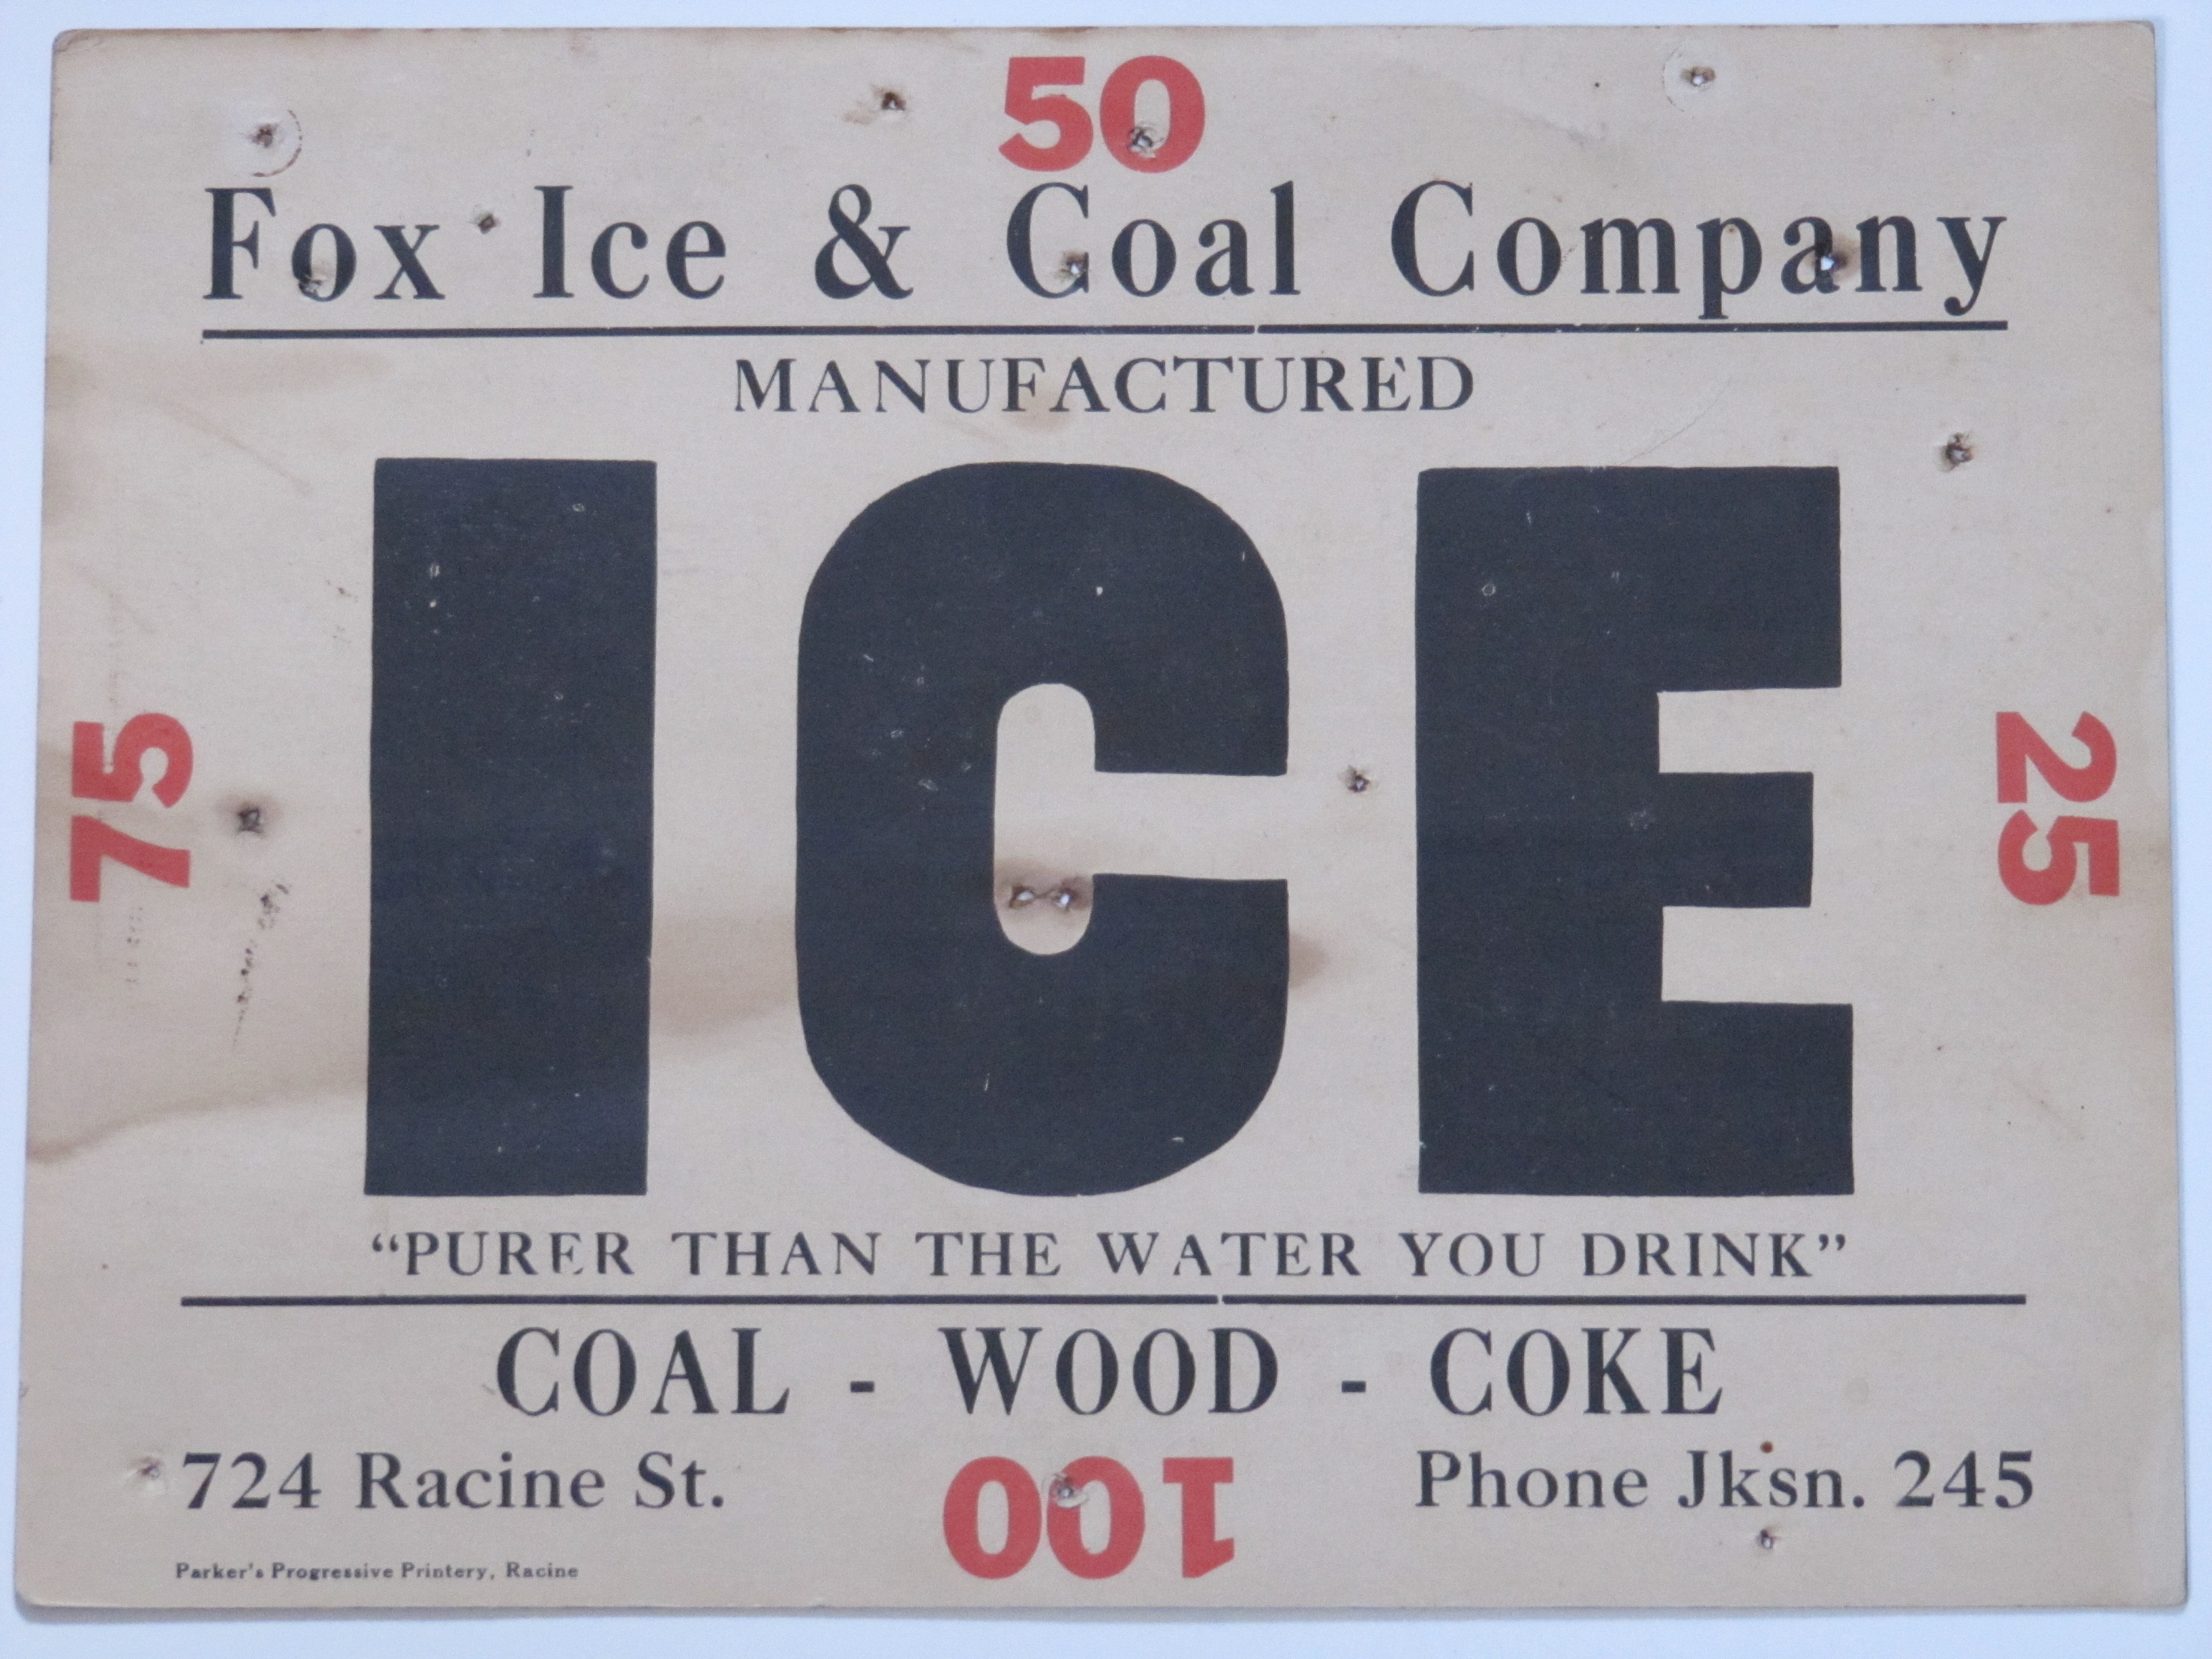 Fox Ice & Coal Co.